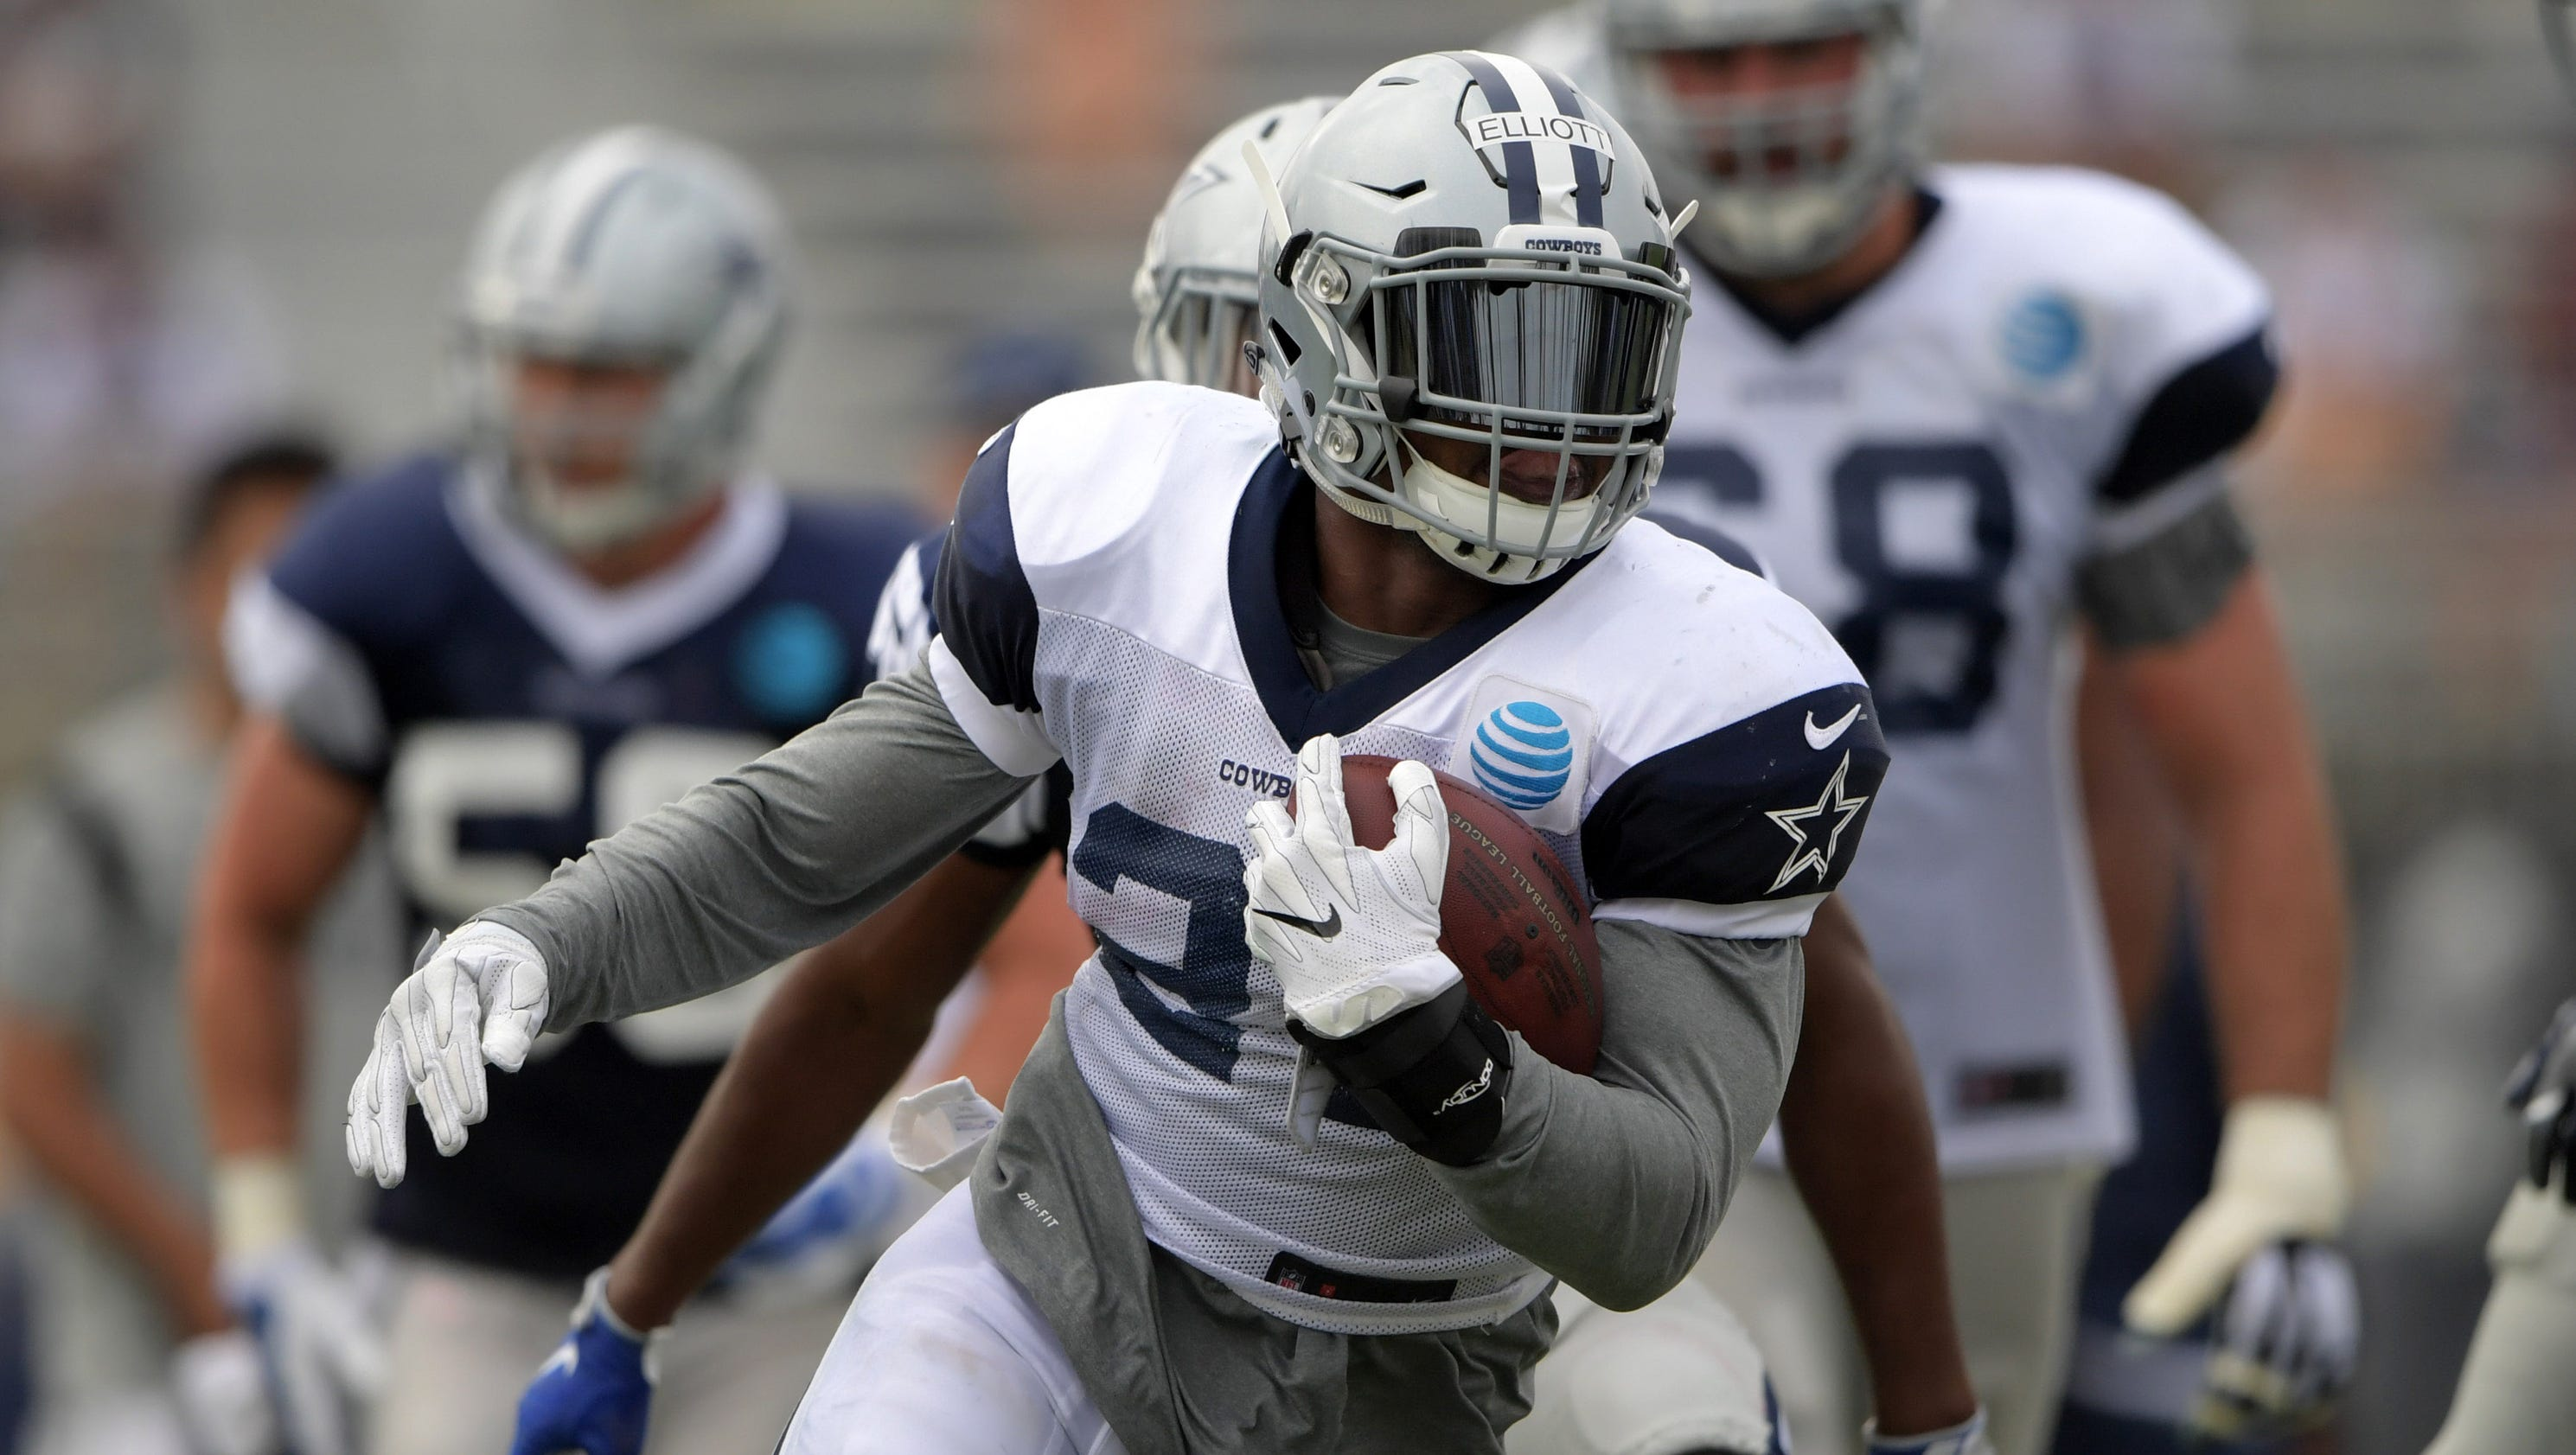 Cowboys RB Ezekiel Elliott not commenting on domestic violence allegation